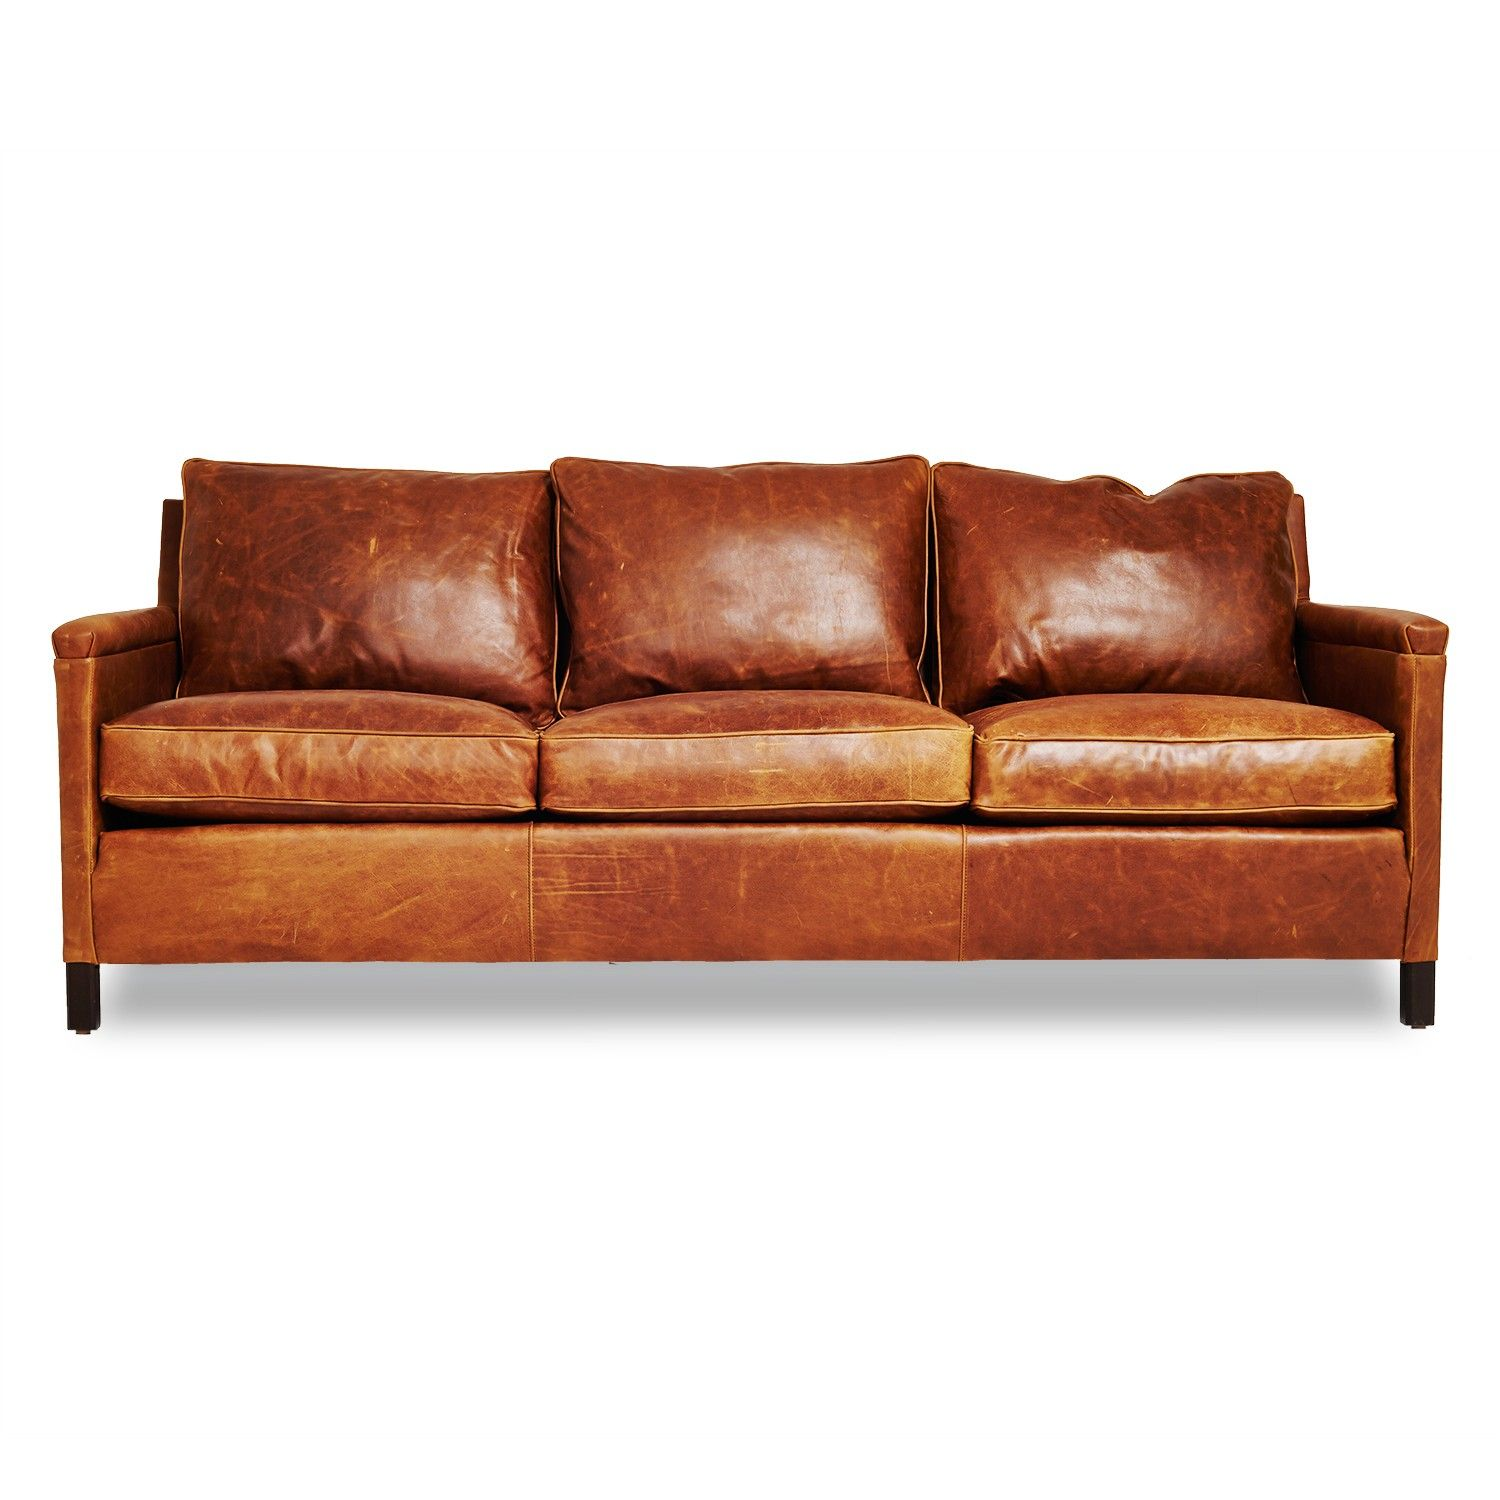 Leather Couches Gallery